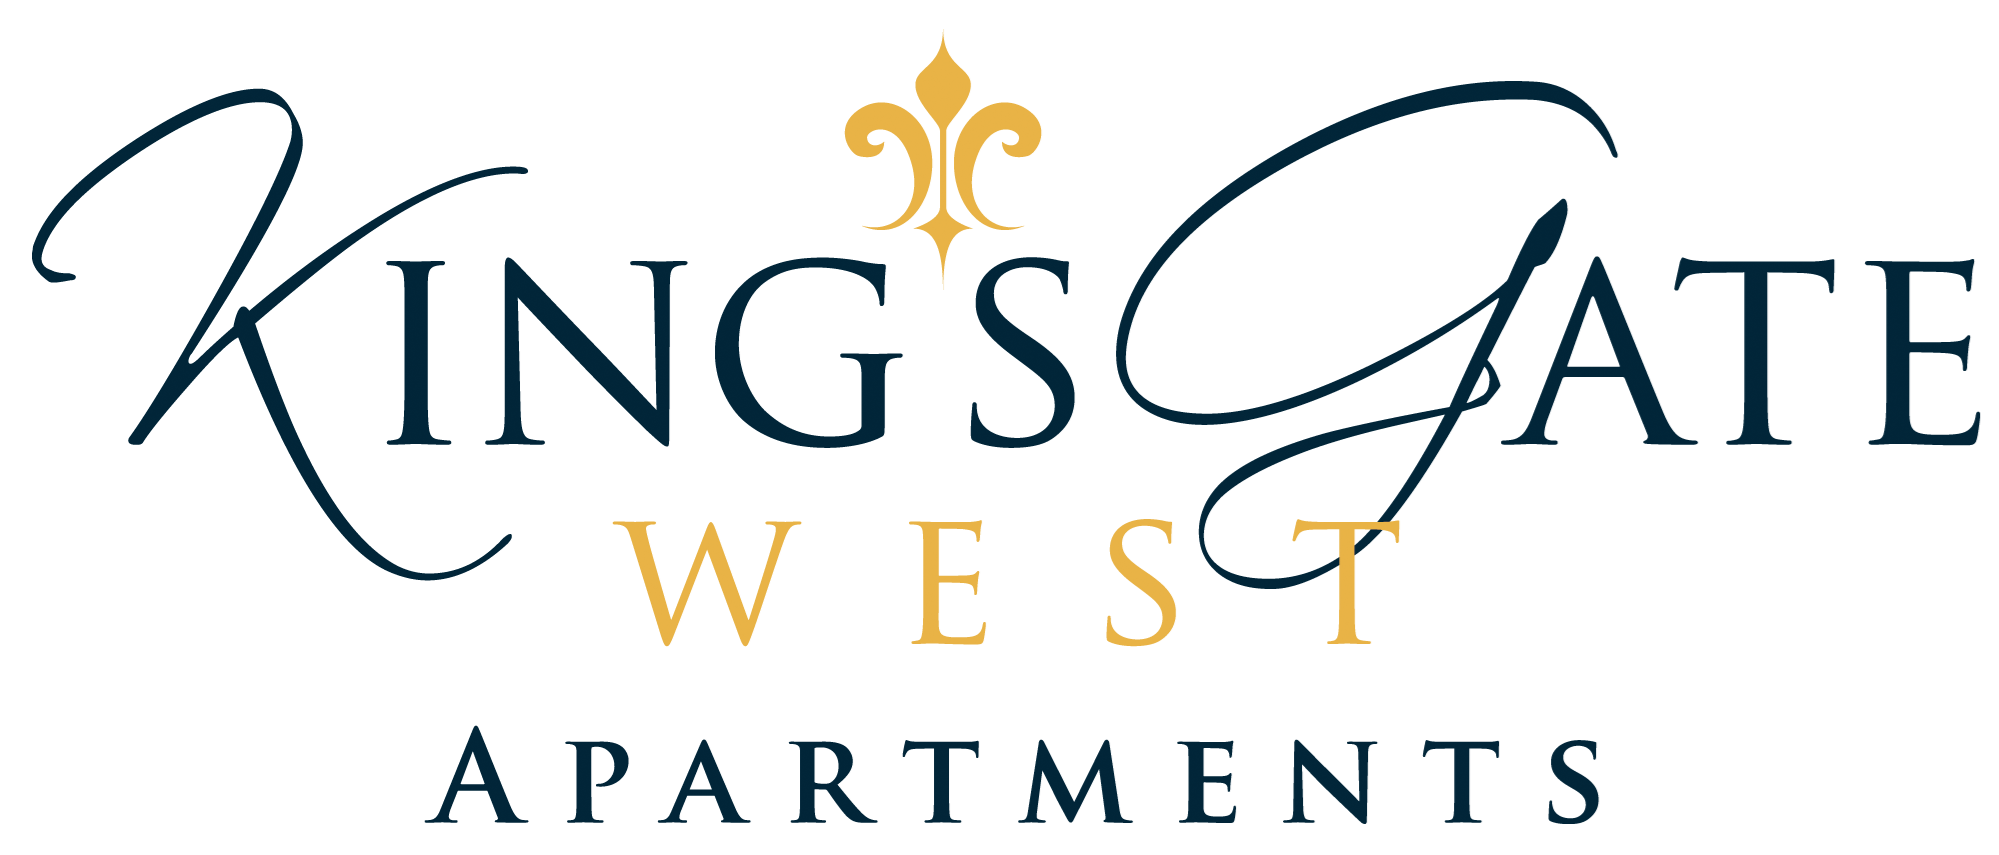 Kings Gate West Apartments